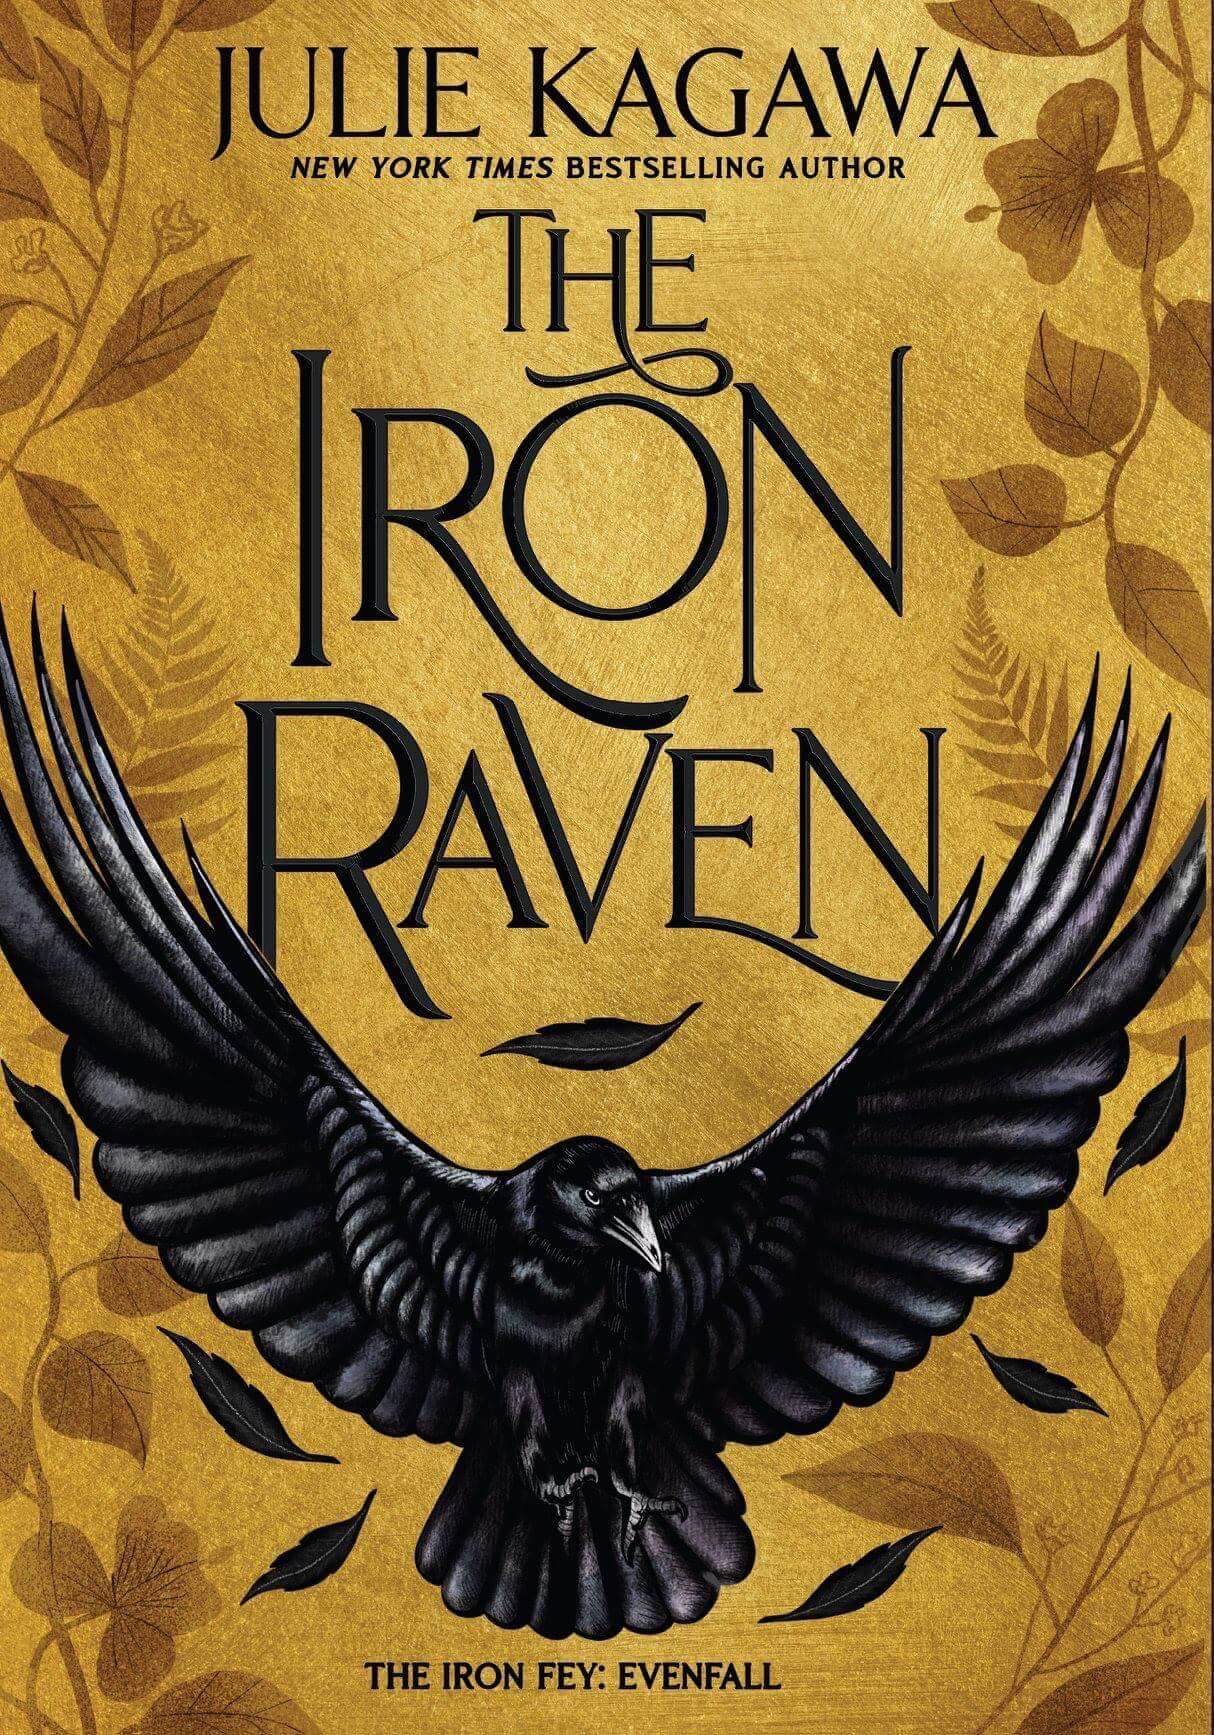 The Iron Raven by Julie Kagawa